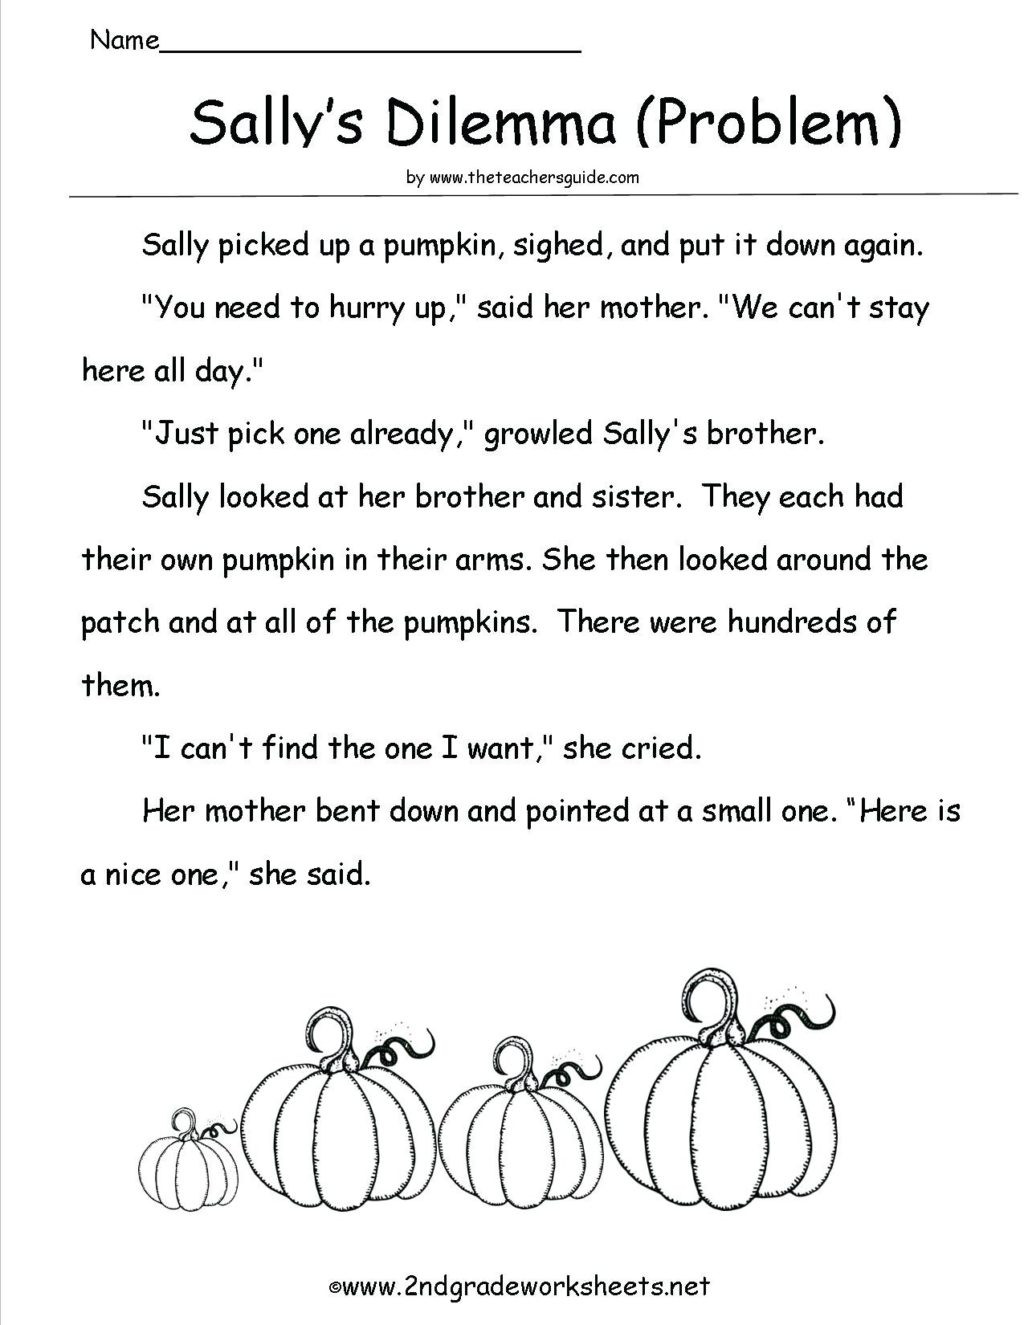 Sequencing Worksheets 2nd Grade Worksheet Printableading Worksheet 3rd Grade Worksheets